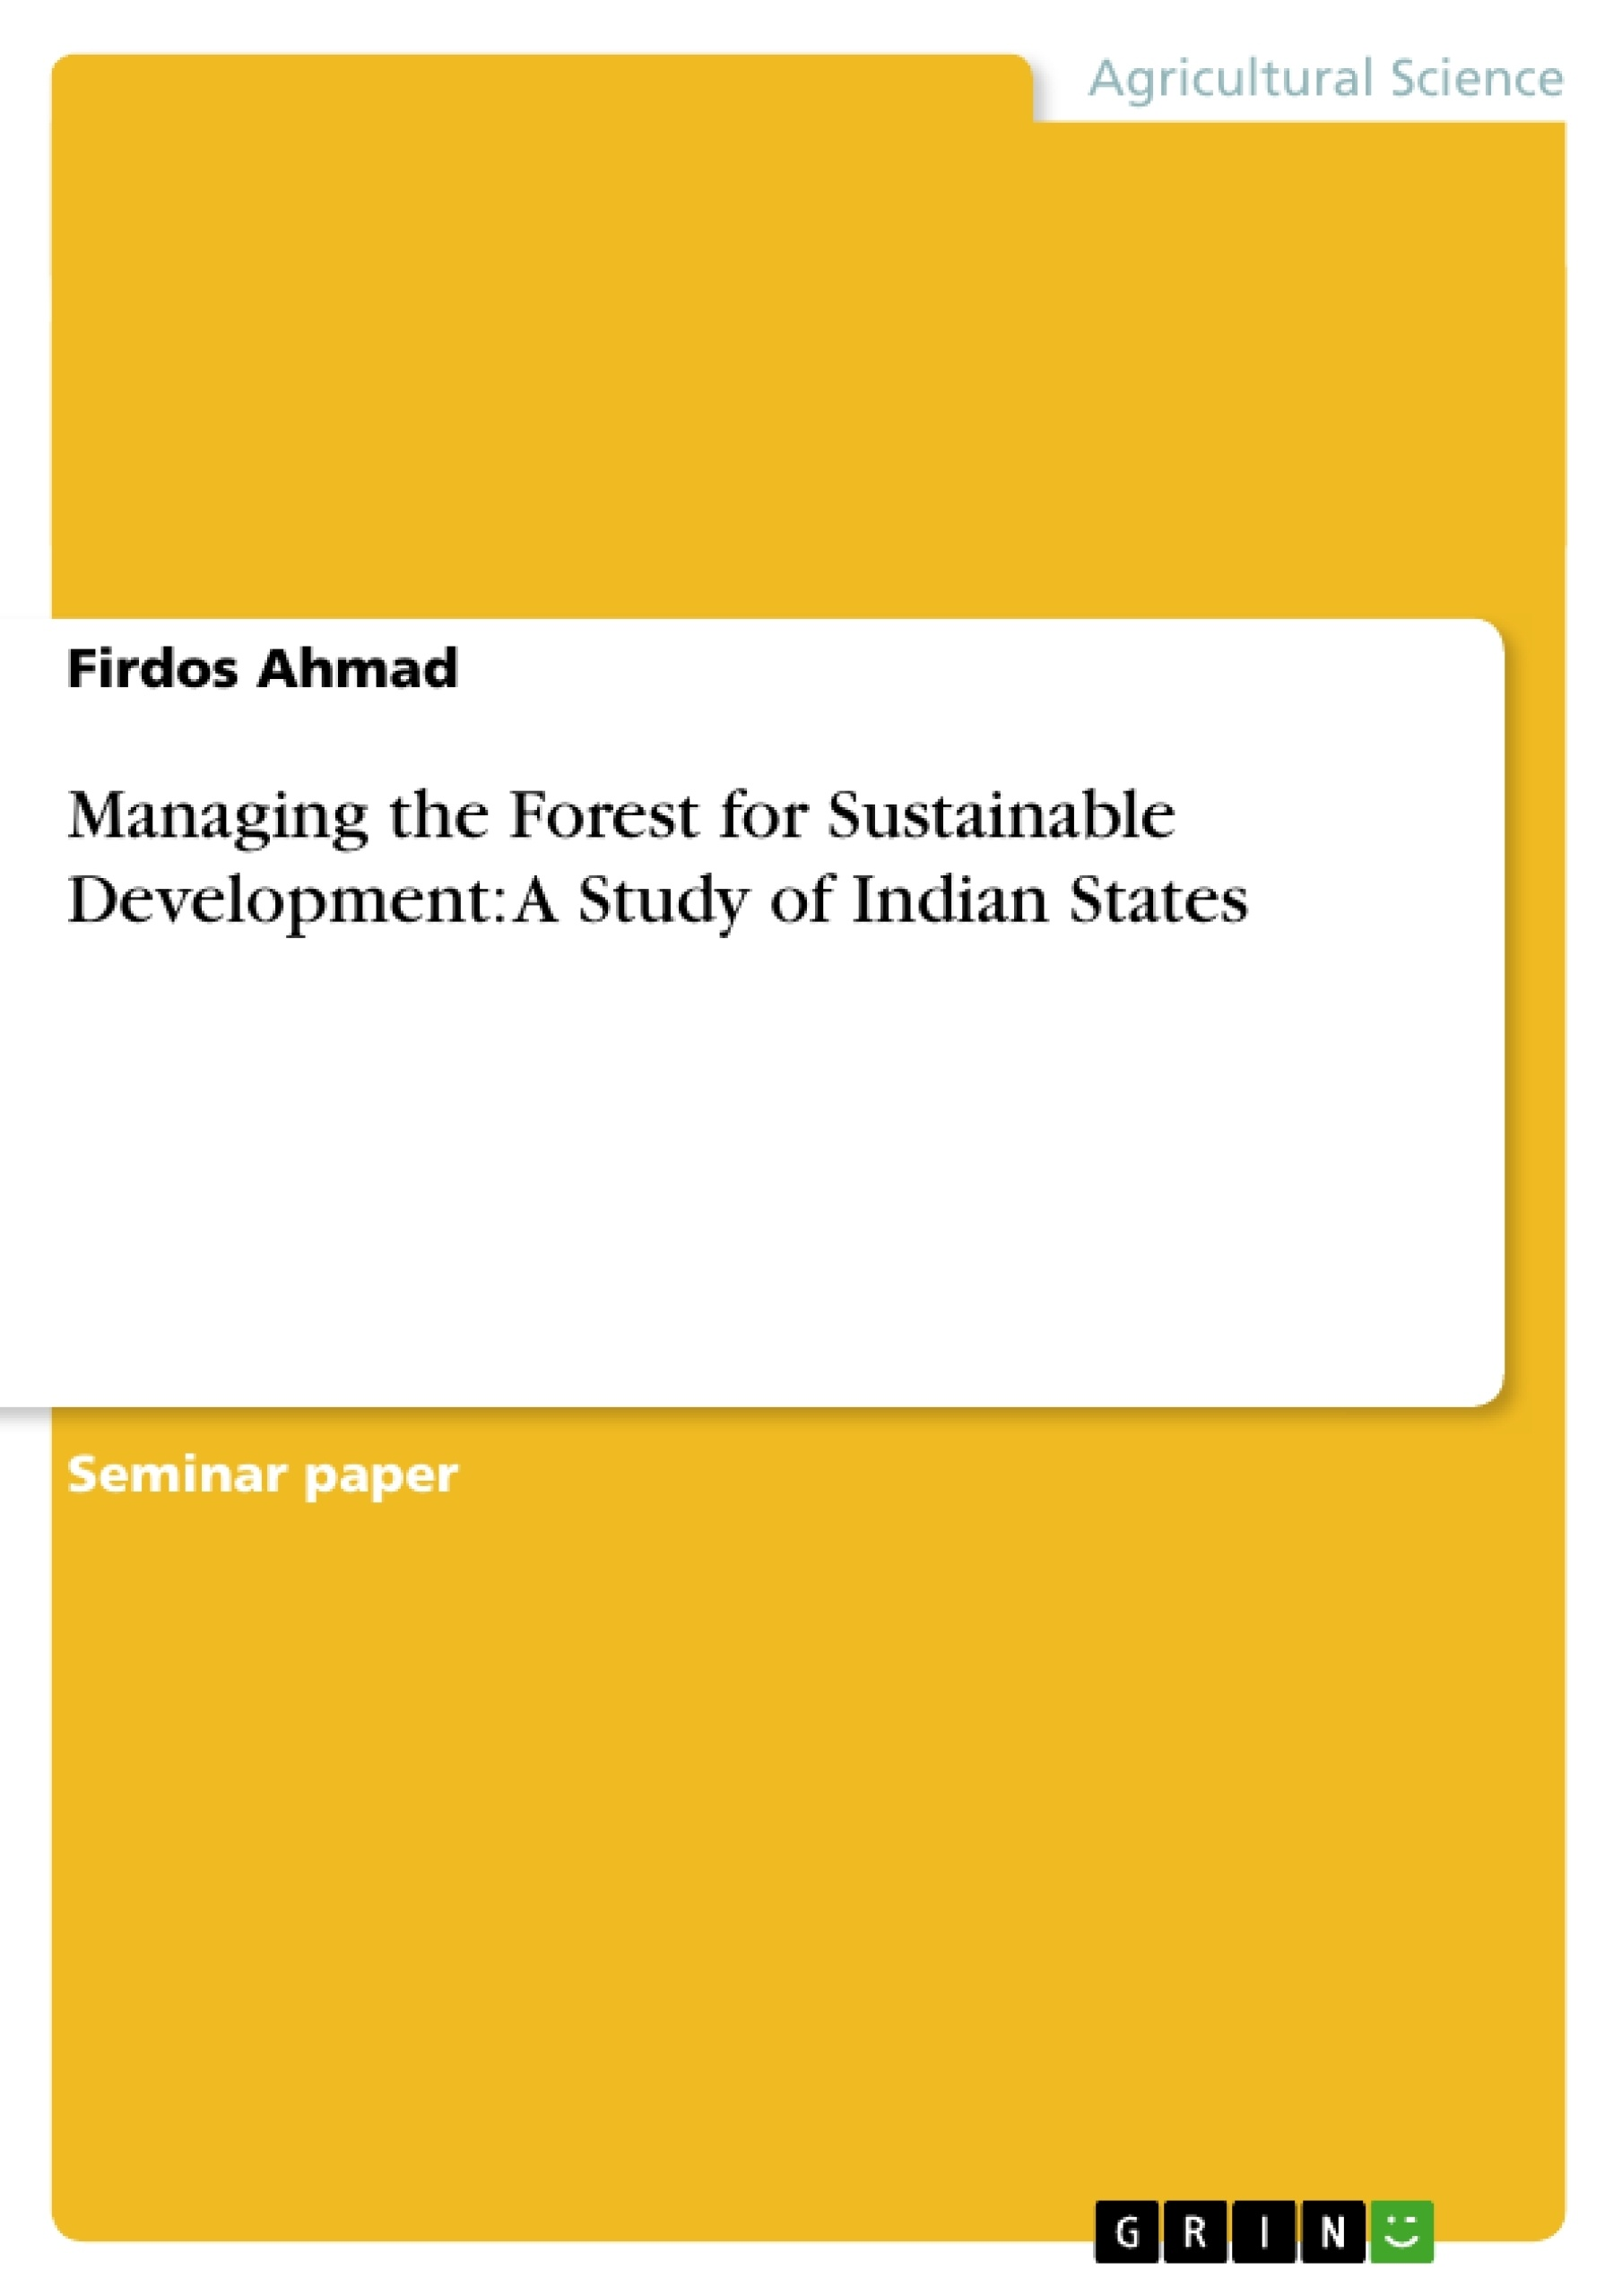 Title: Managing the Forest for Sustainable Development: A Study of Indian States